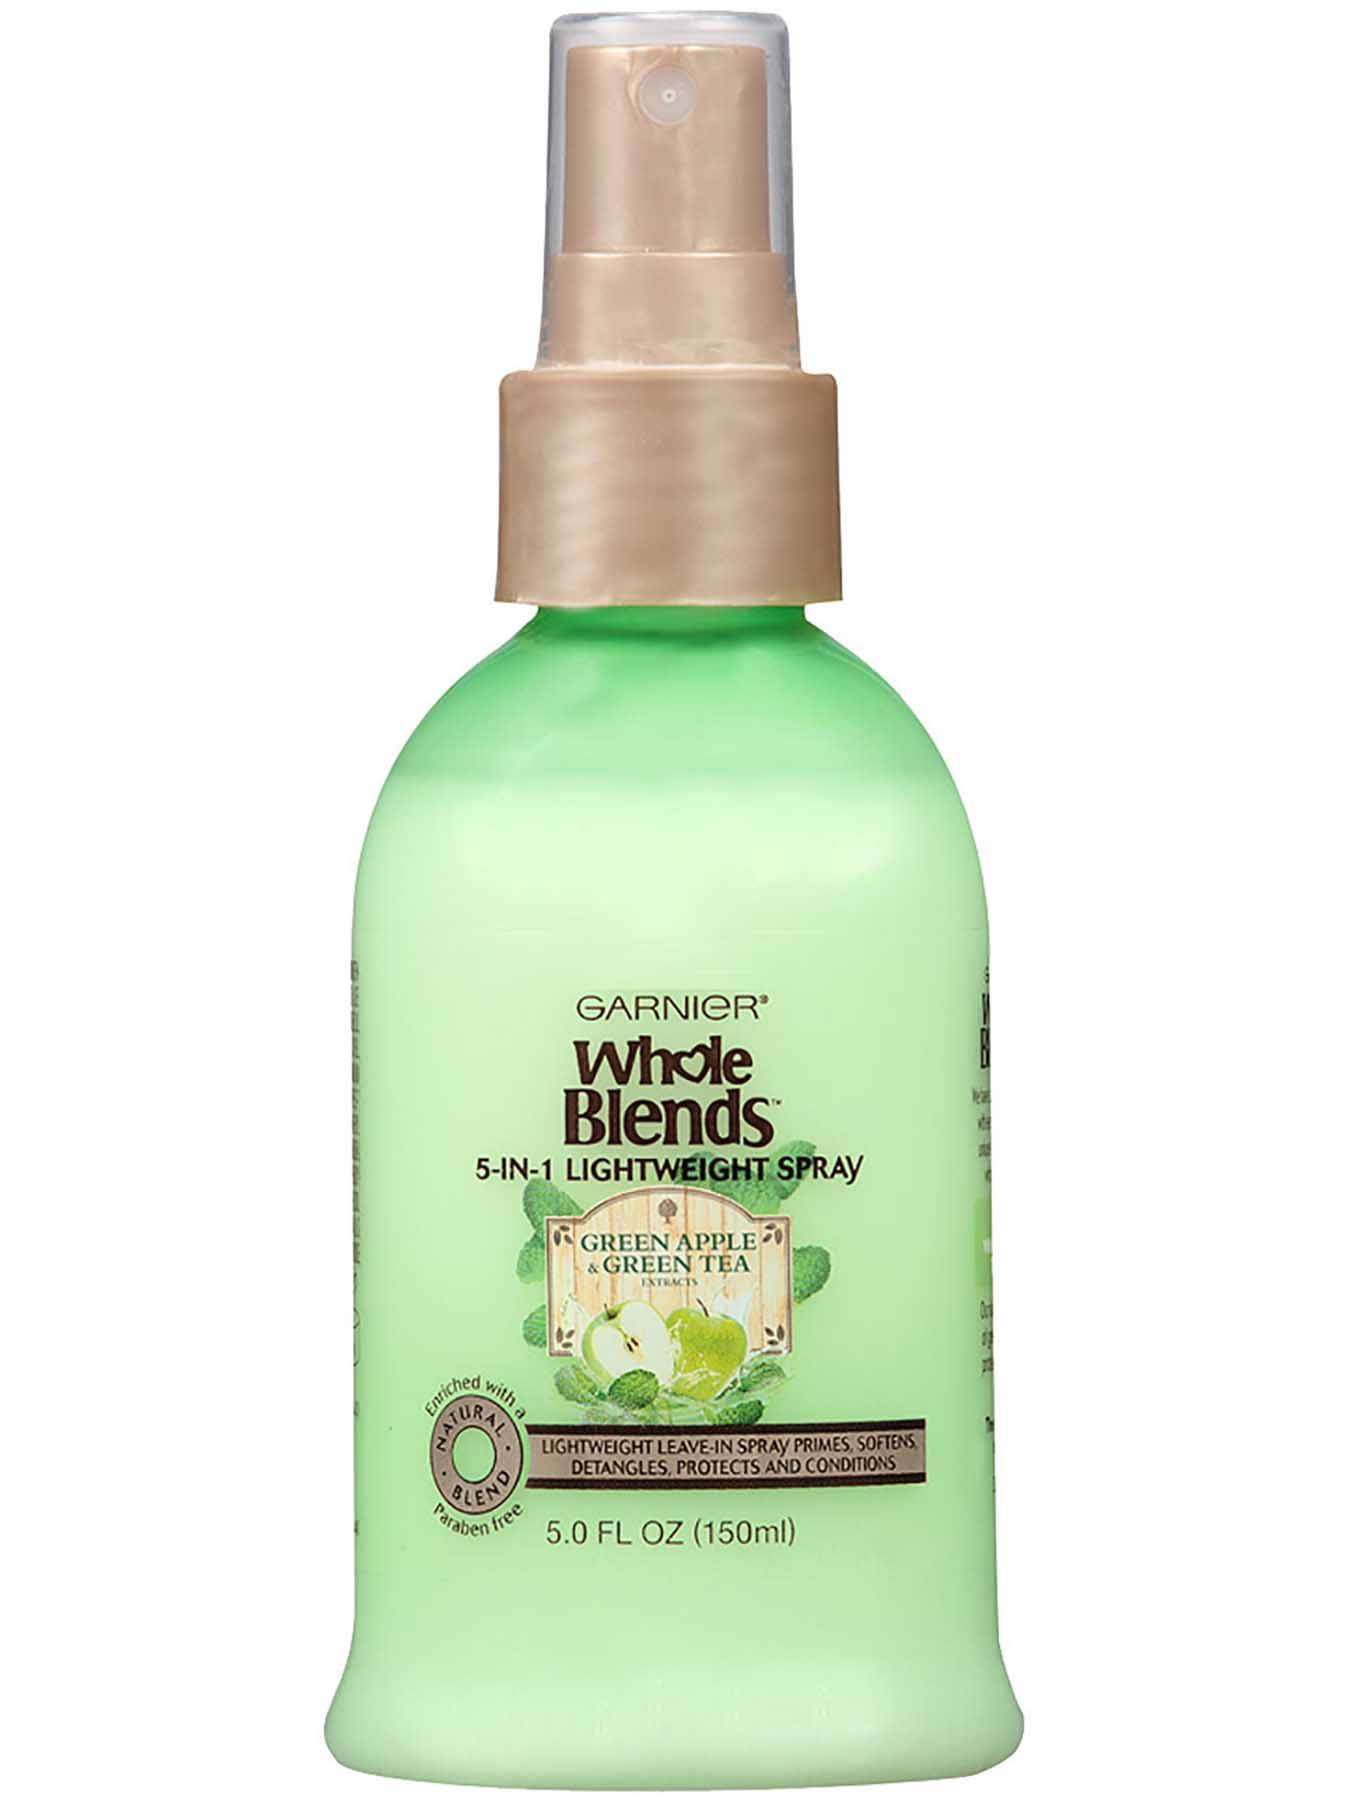 Garnier Whole Blends Refreshing 5-in-1 Lightweight Spray Green Apple Green Tea Extracts